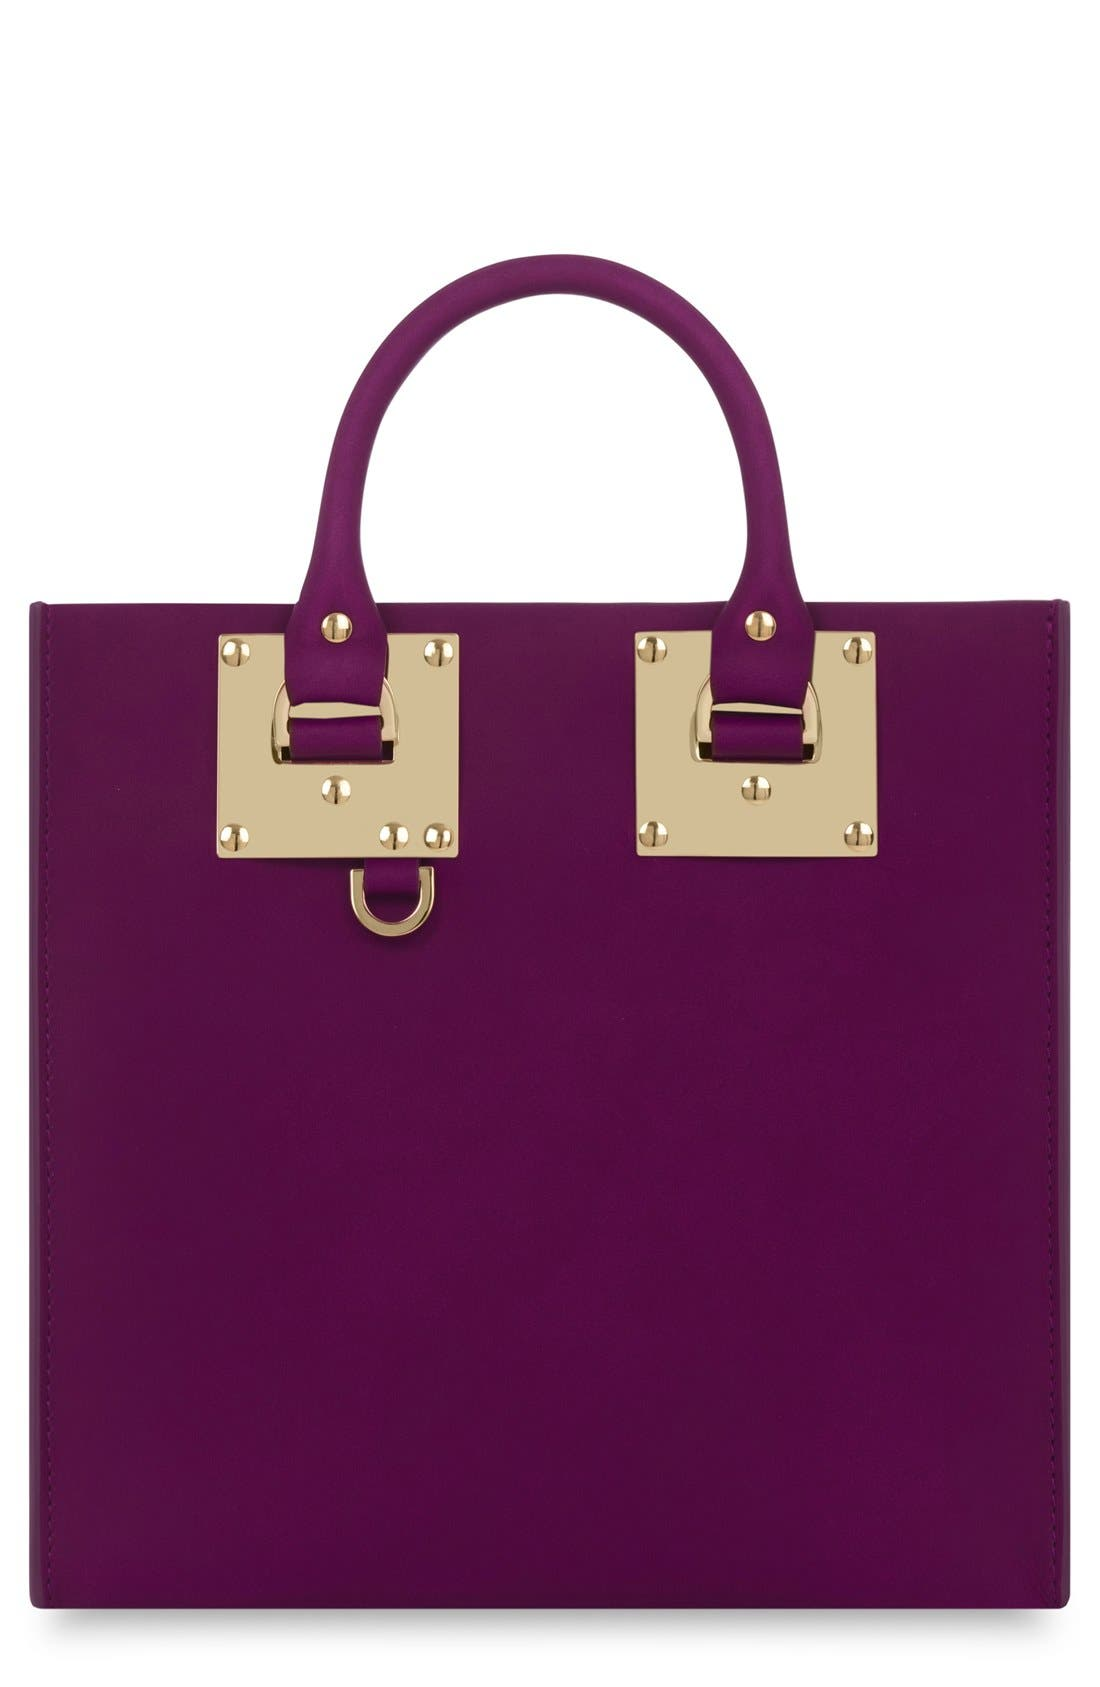 Main Image - Sophie Hulme Albion Square Leather Tote